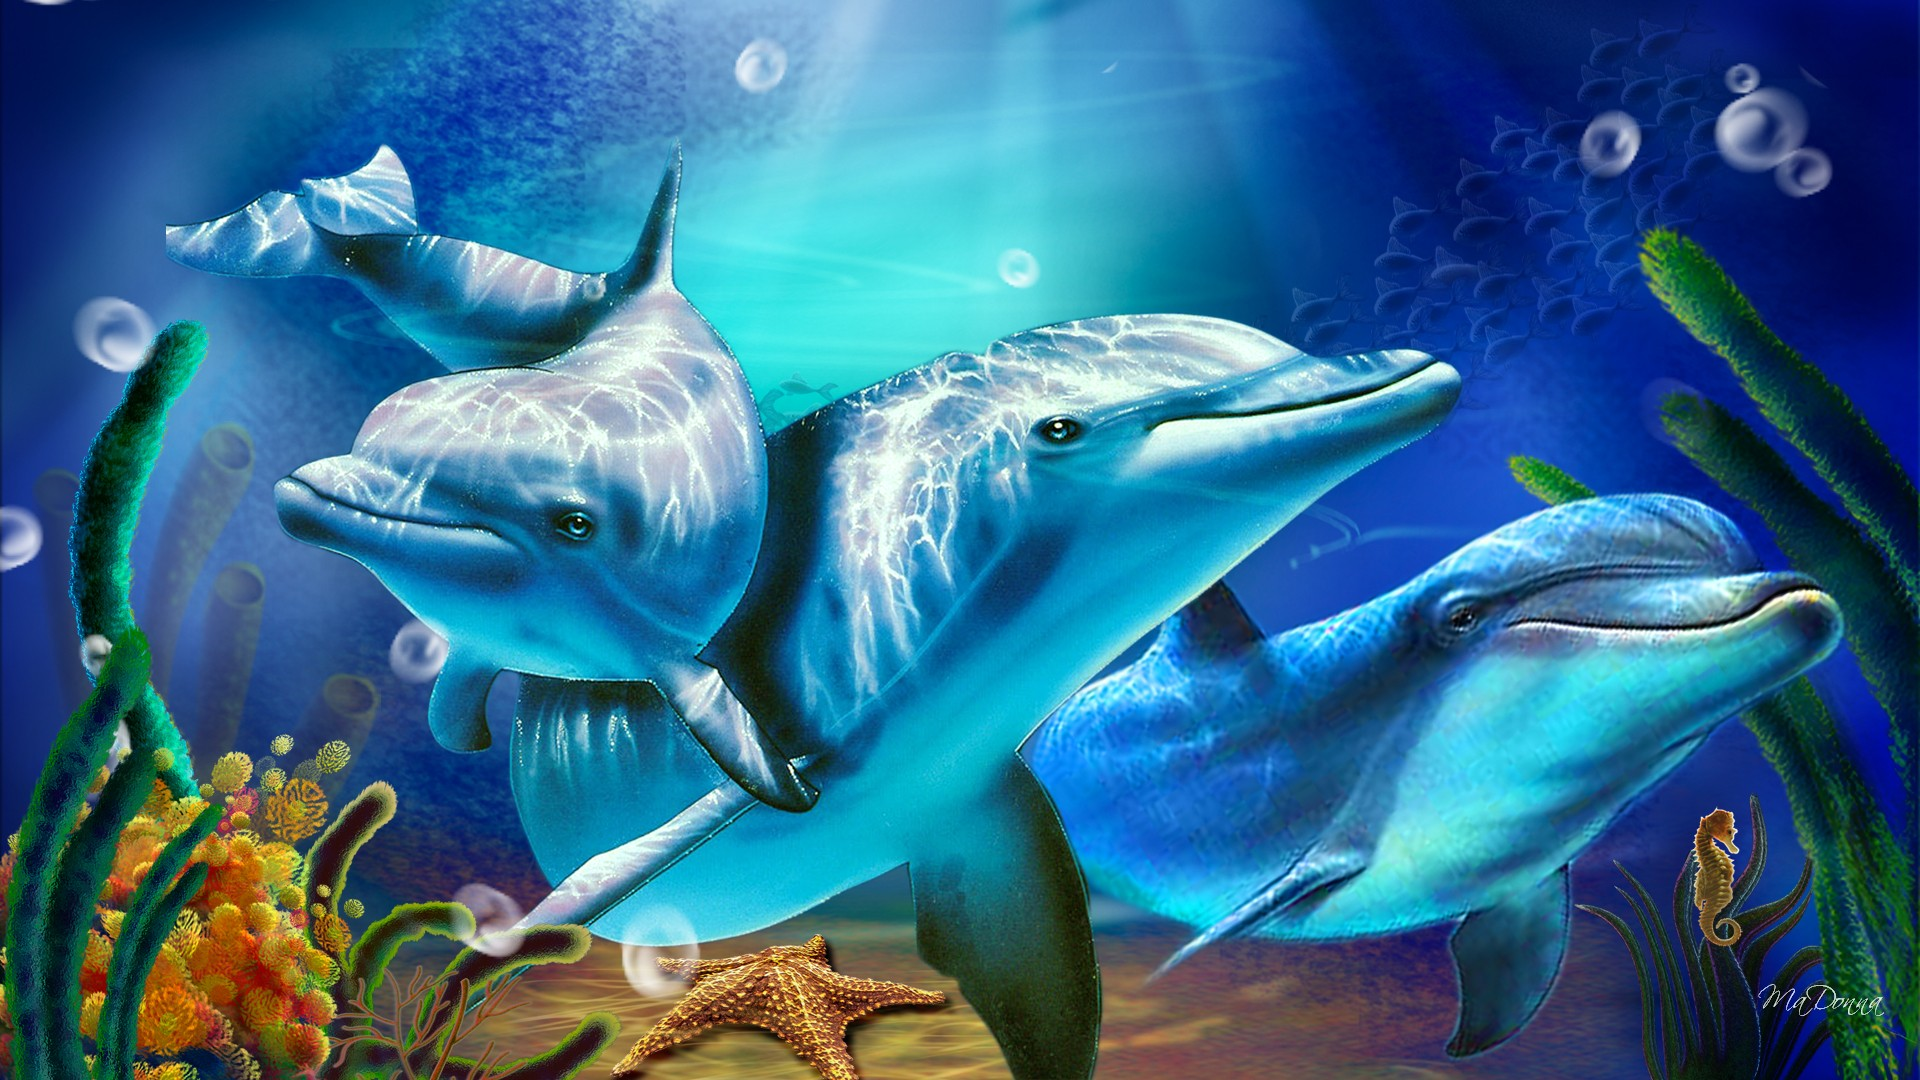 Dolphin Backgrounds wallpaper wallpaper hd background desktop 1920x1080